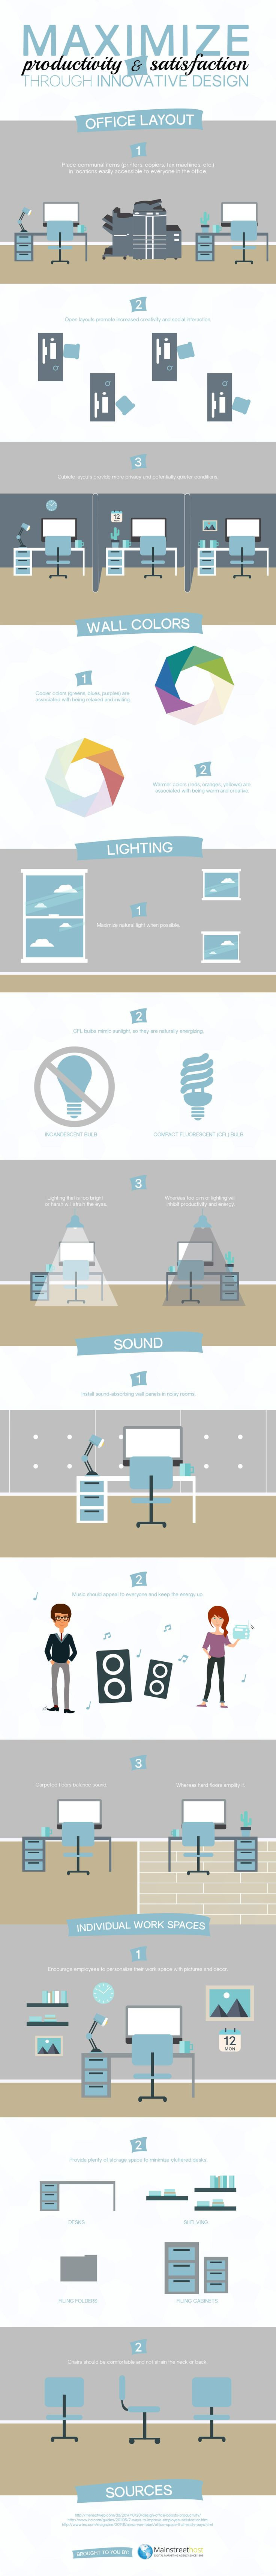 Optimizing Your Workspace for Employee Productivity [Infographic]